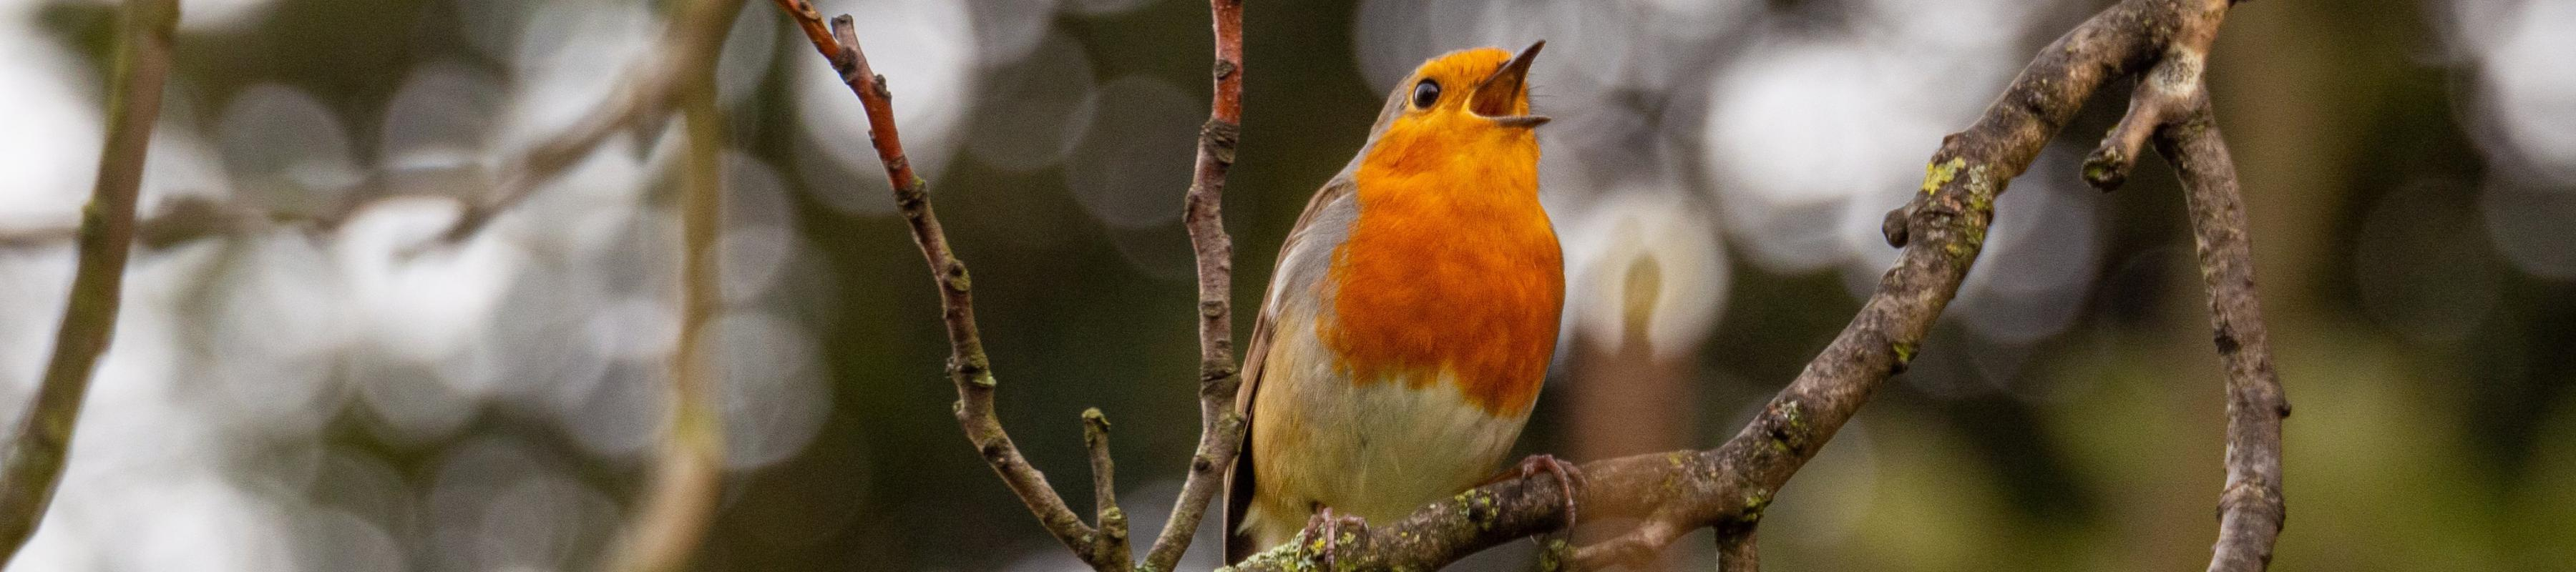 Robin singing in spring